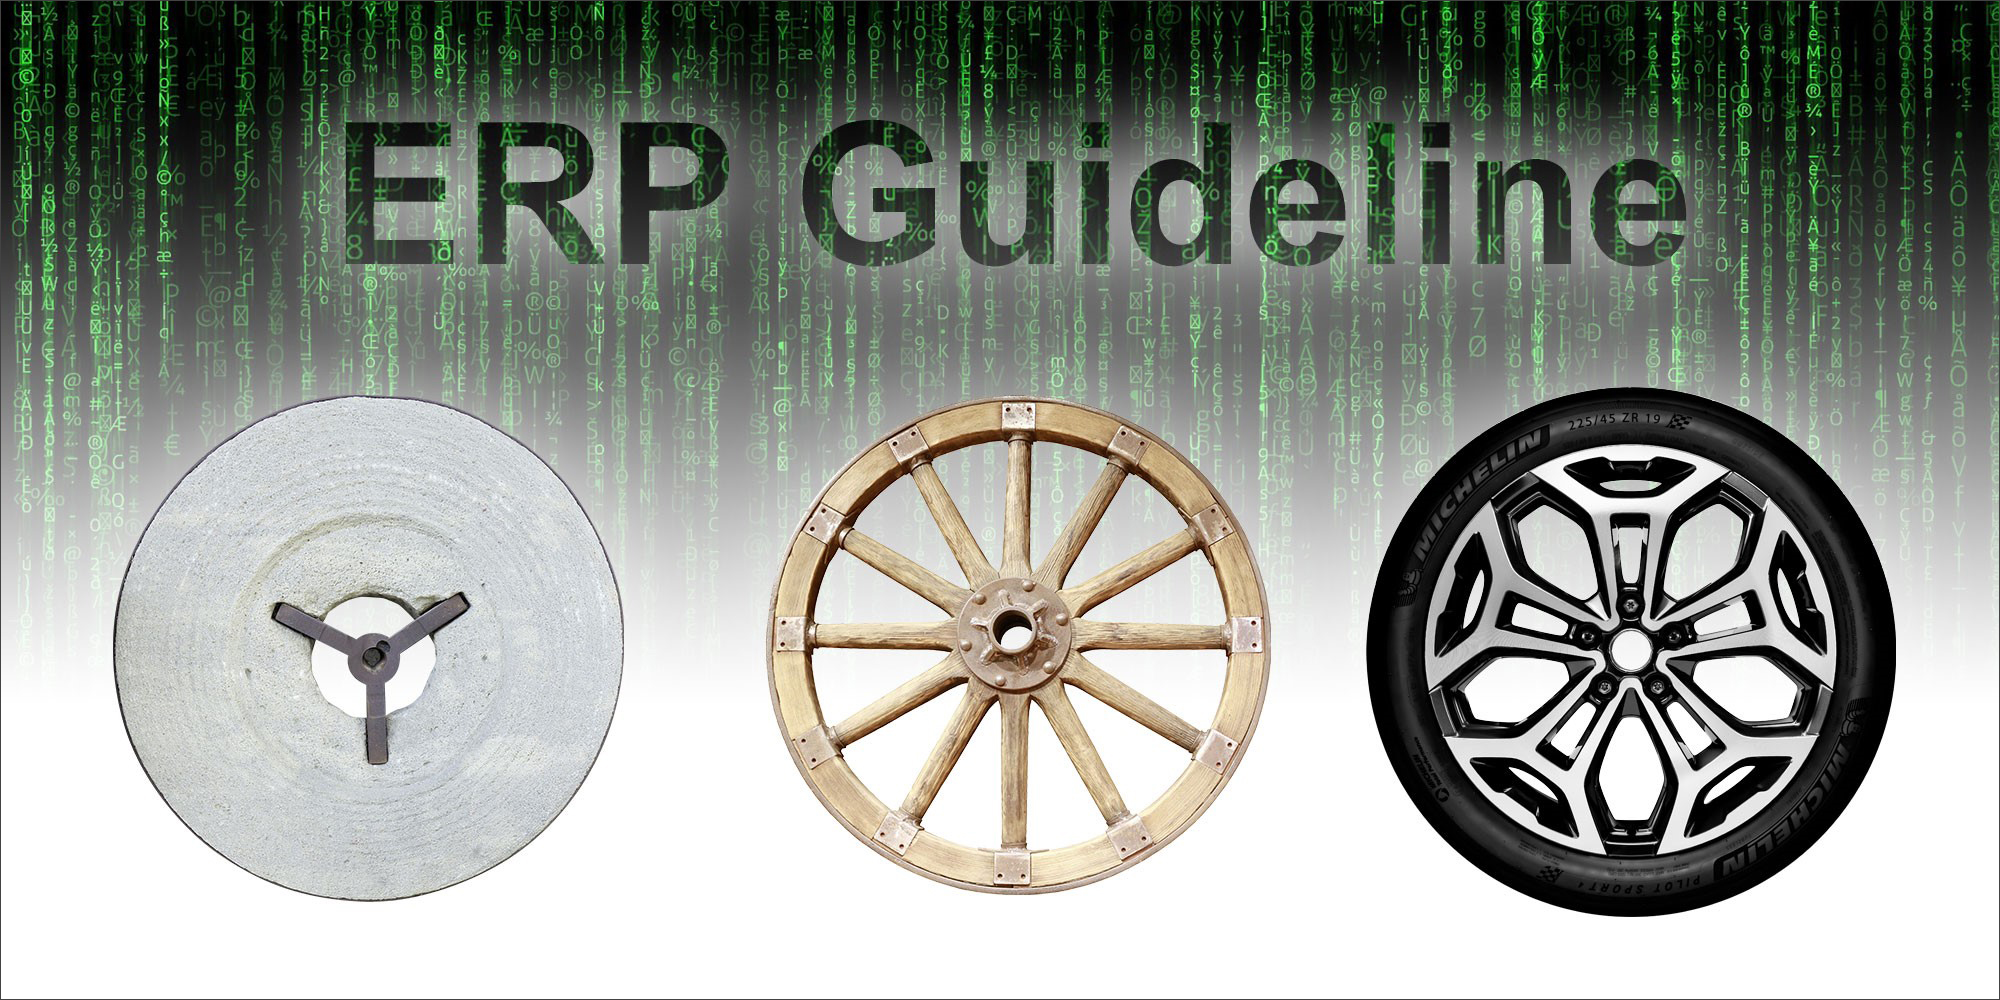 ERP Systems: Don't reinvent the wheel